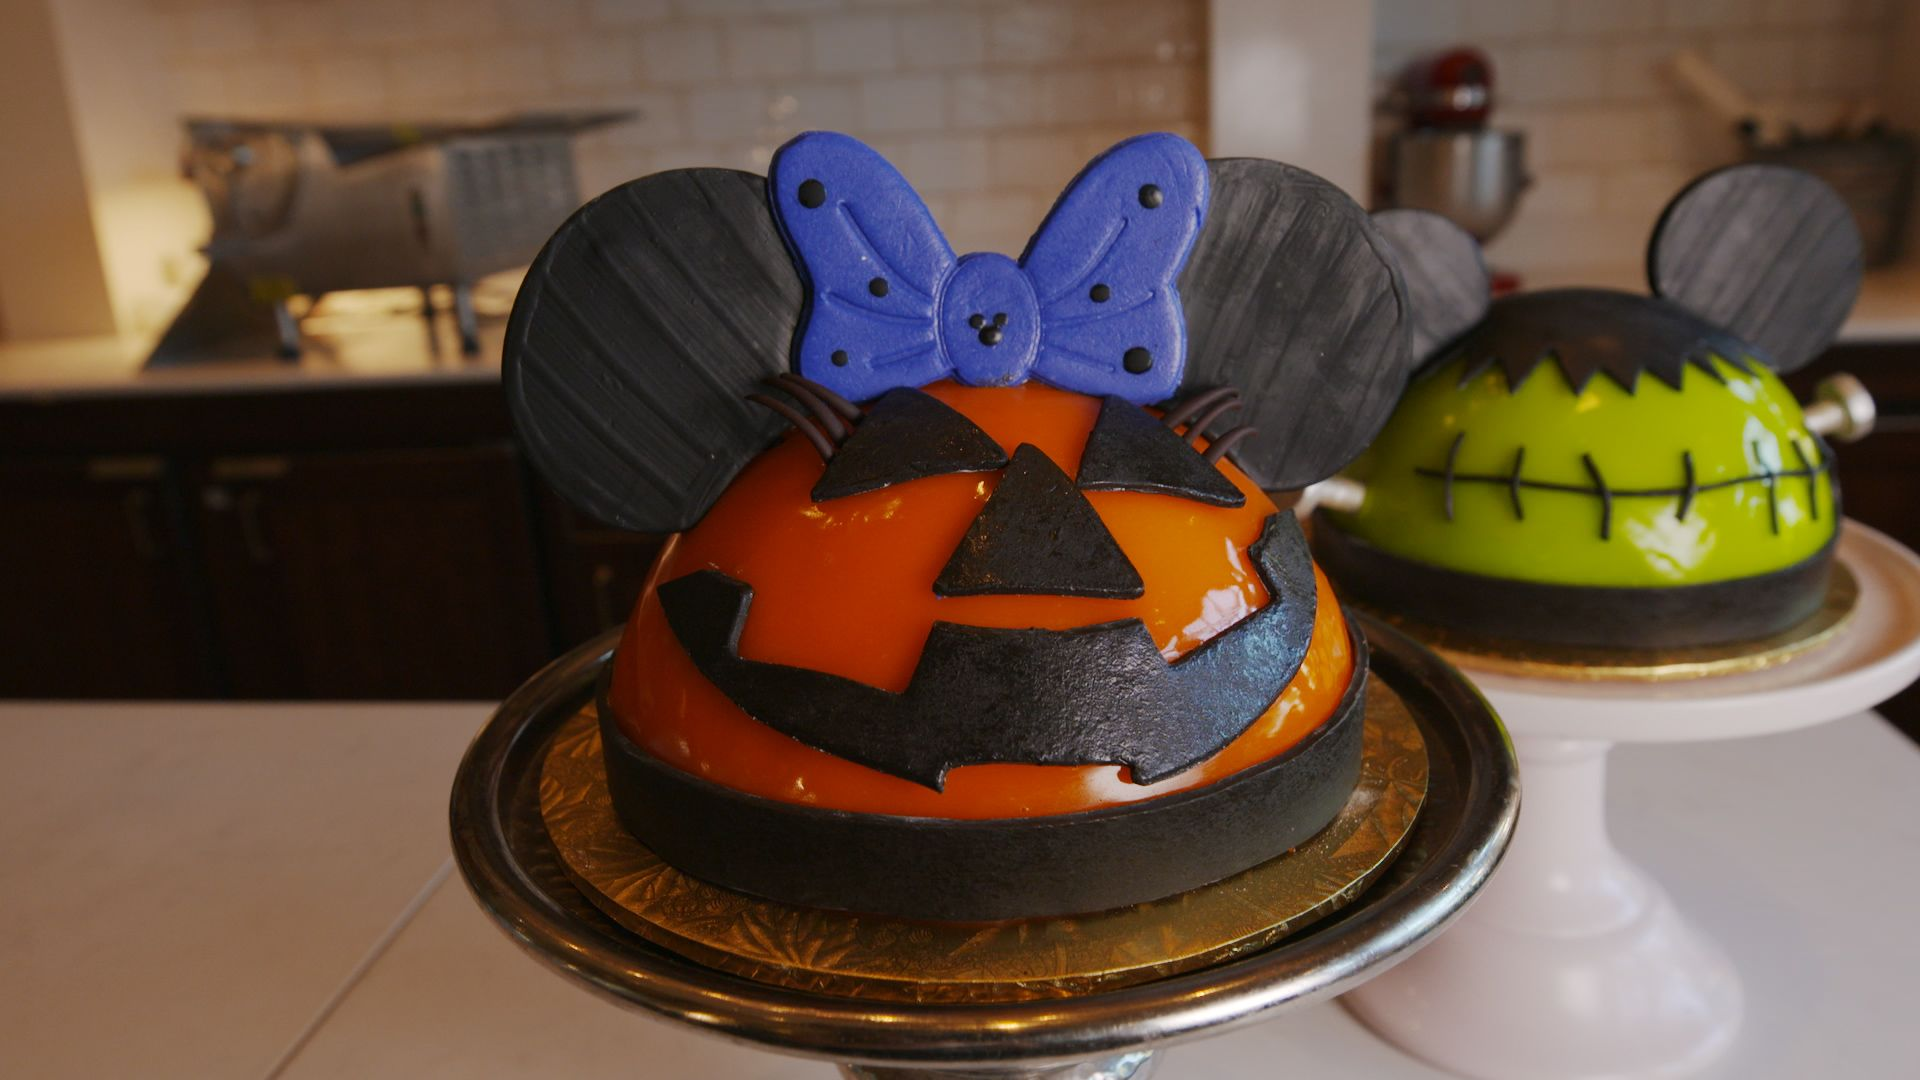 Disney Is Selling Huge Pumpkin Minnie And Frankenstein Mickey Cakes For Halloween